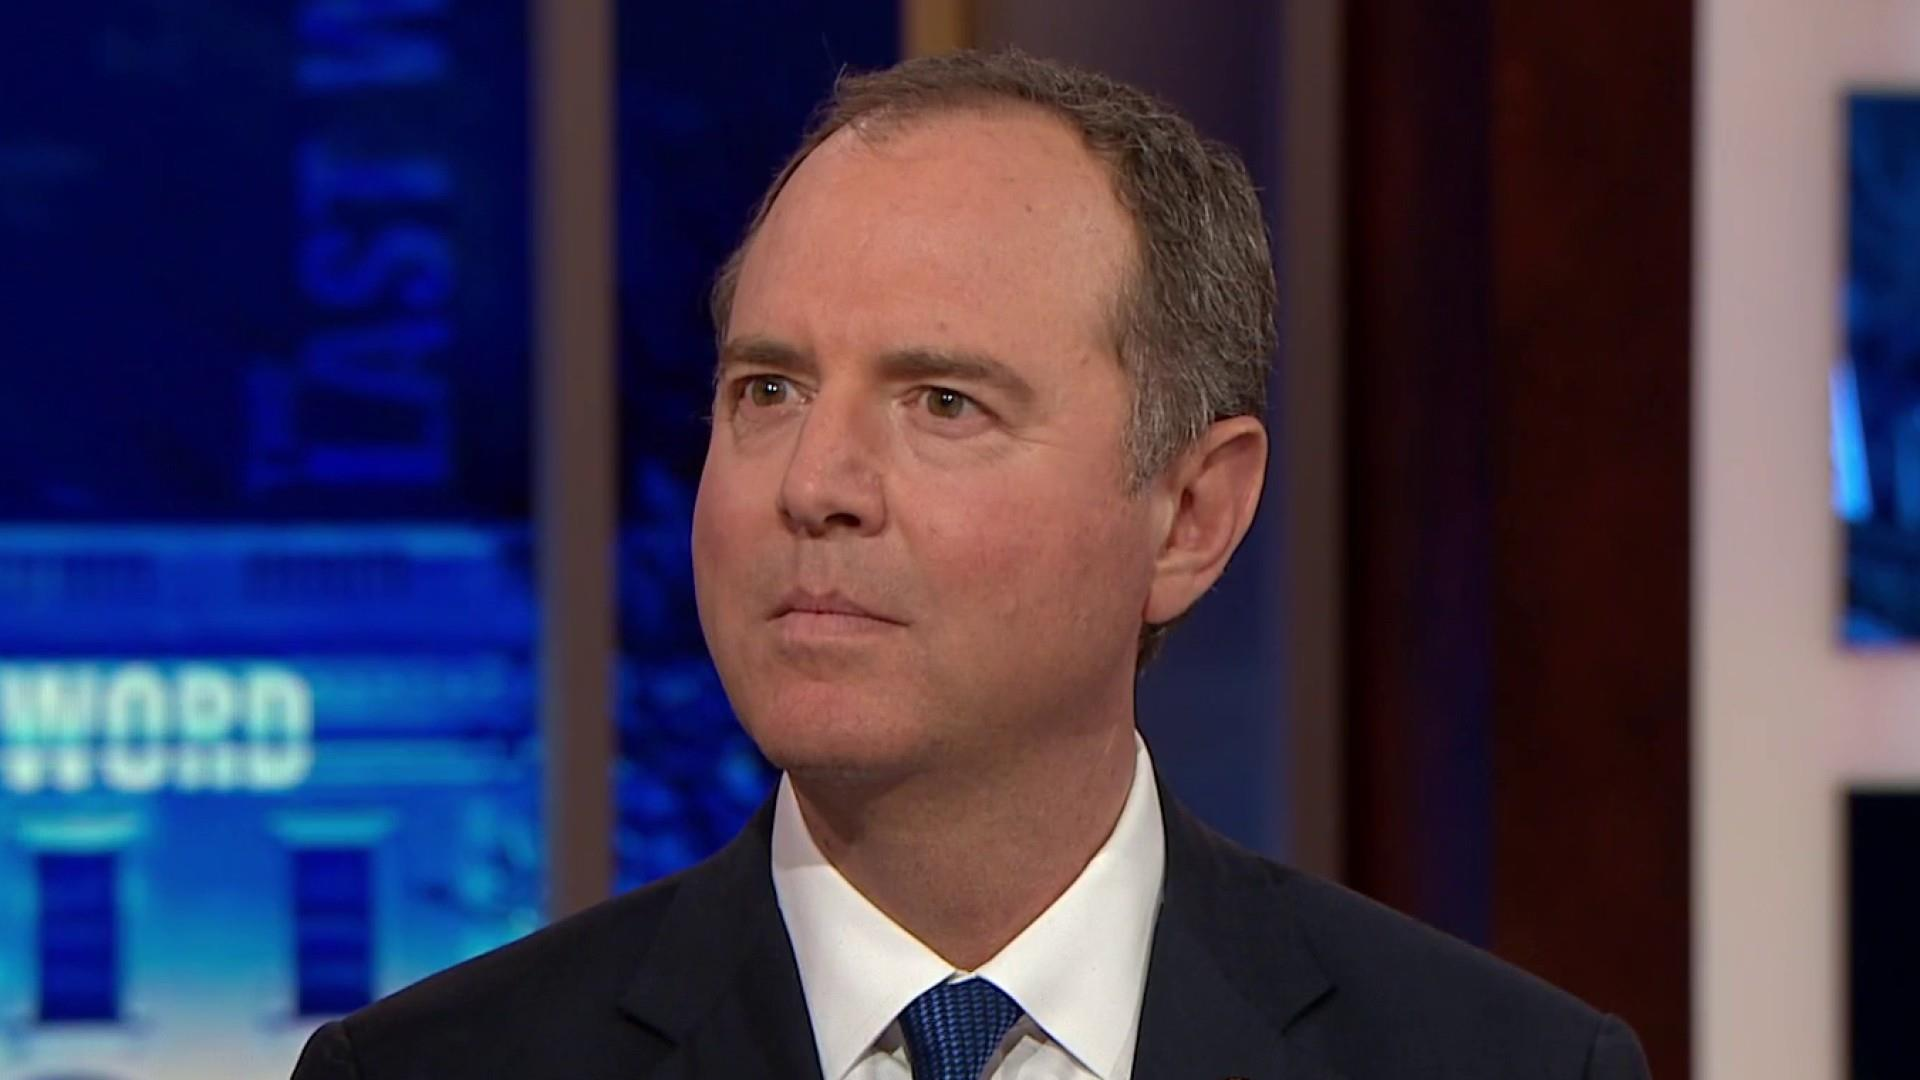 Chairman Schiff: A.G. Barr deliberately misled the Congress